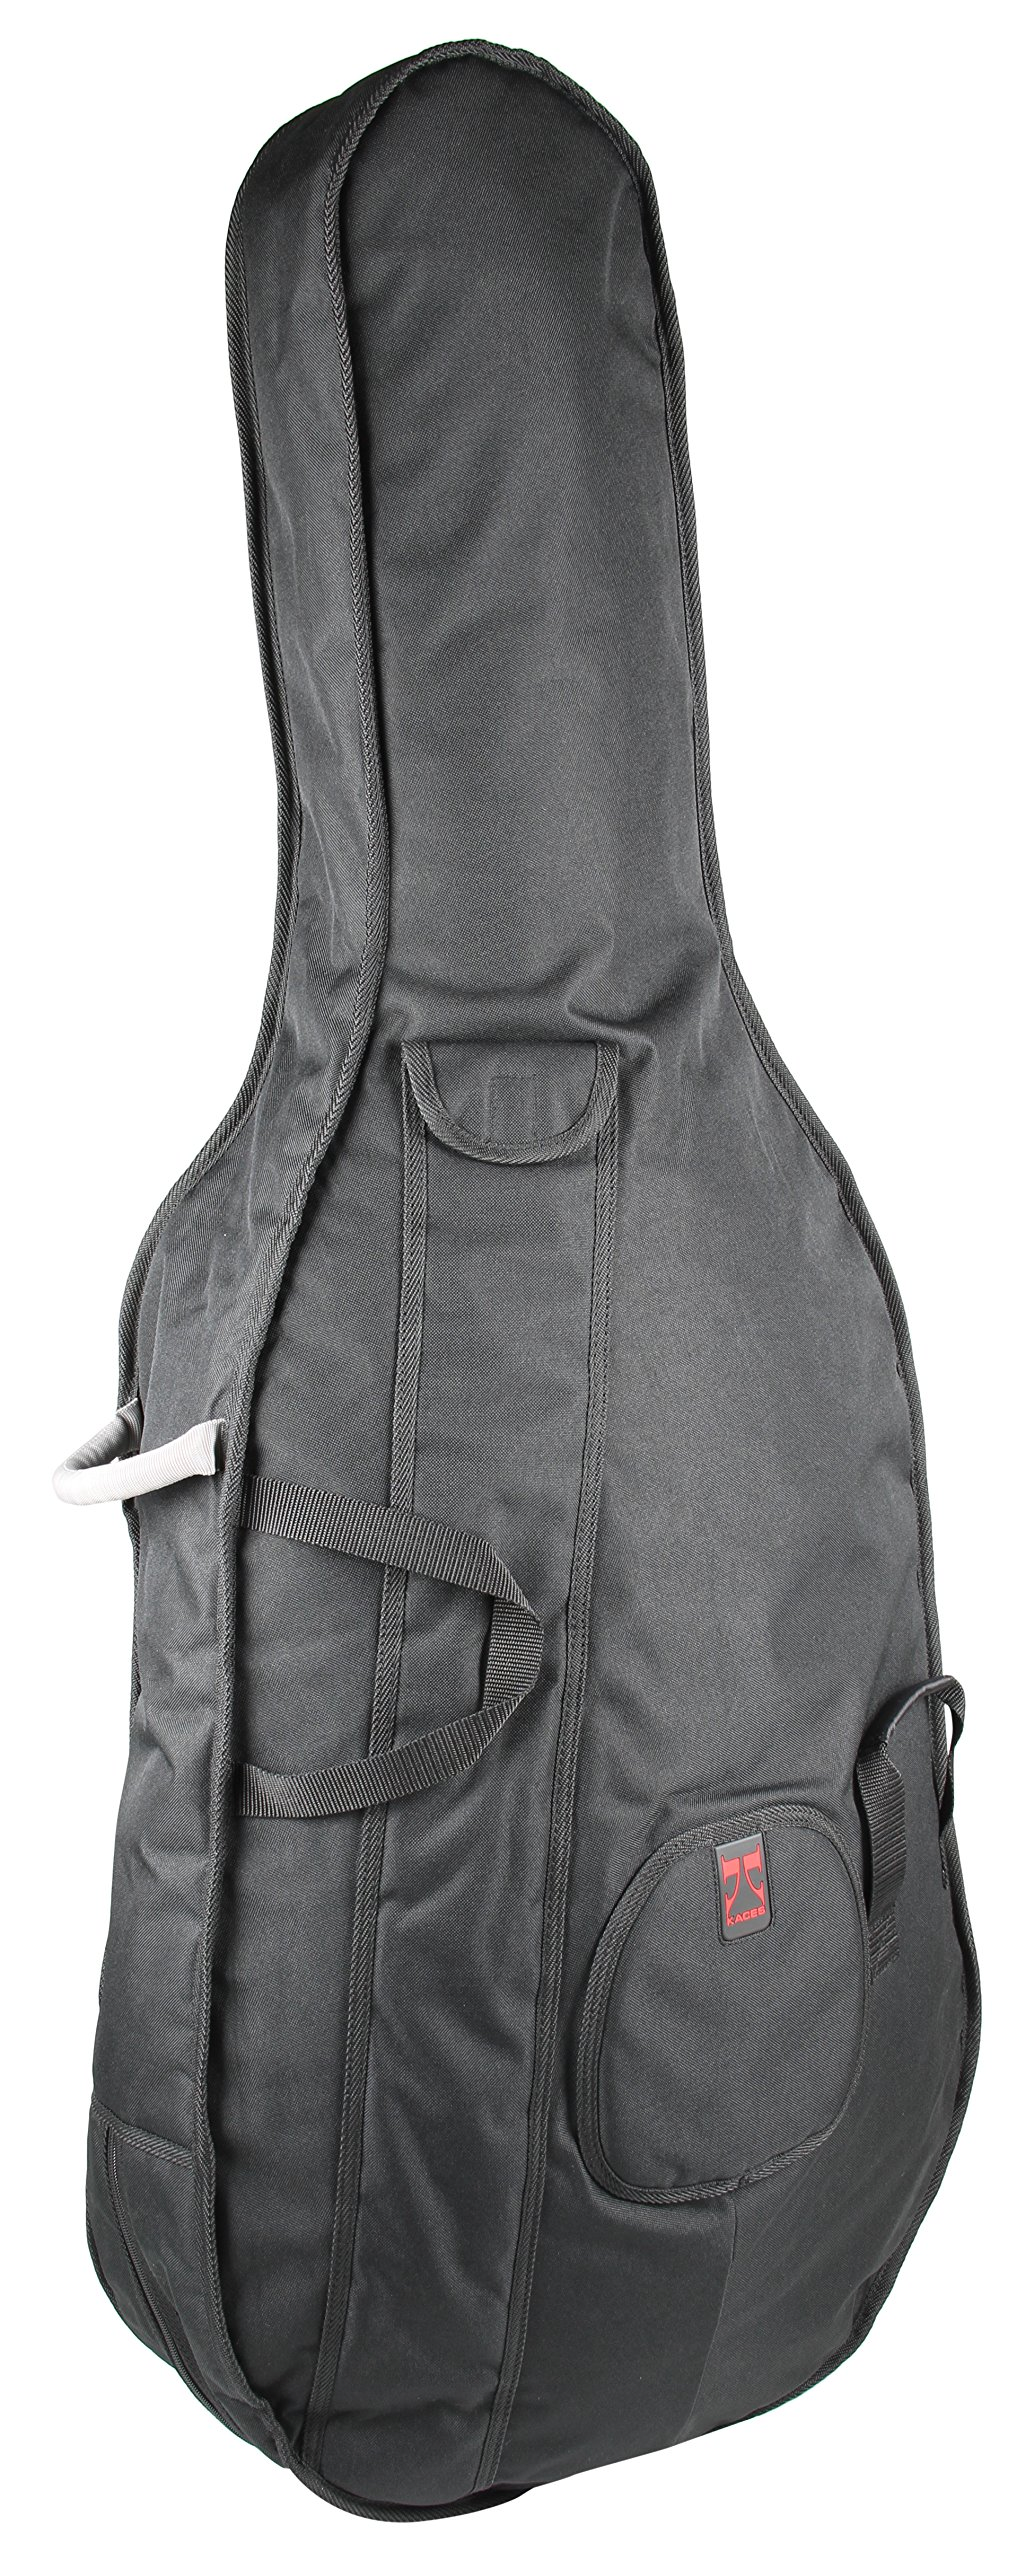 Kaces UKCB-3/4 University Series 3/4 Size Cello Bag by ACE (Image #1)